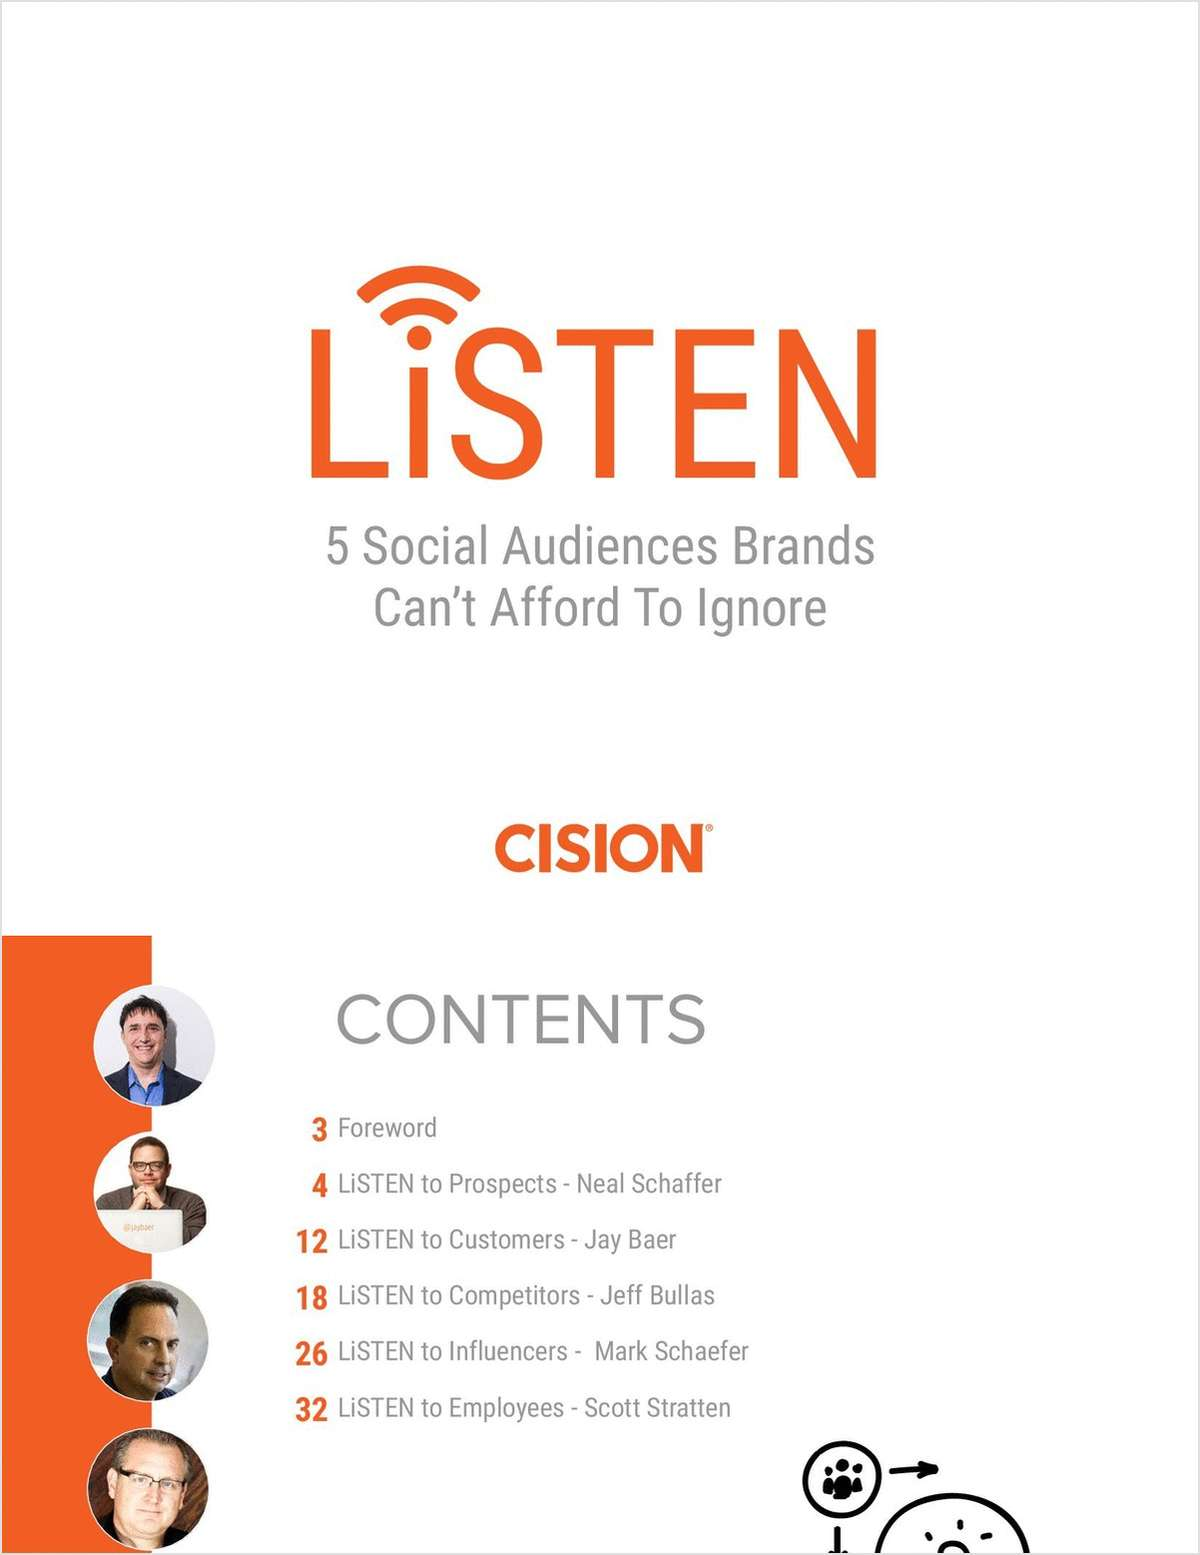 5 Social Audiences Brands Can't Afford to Ignore